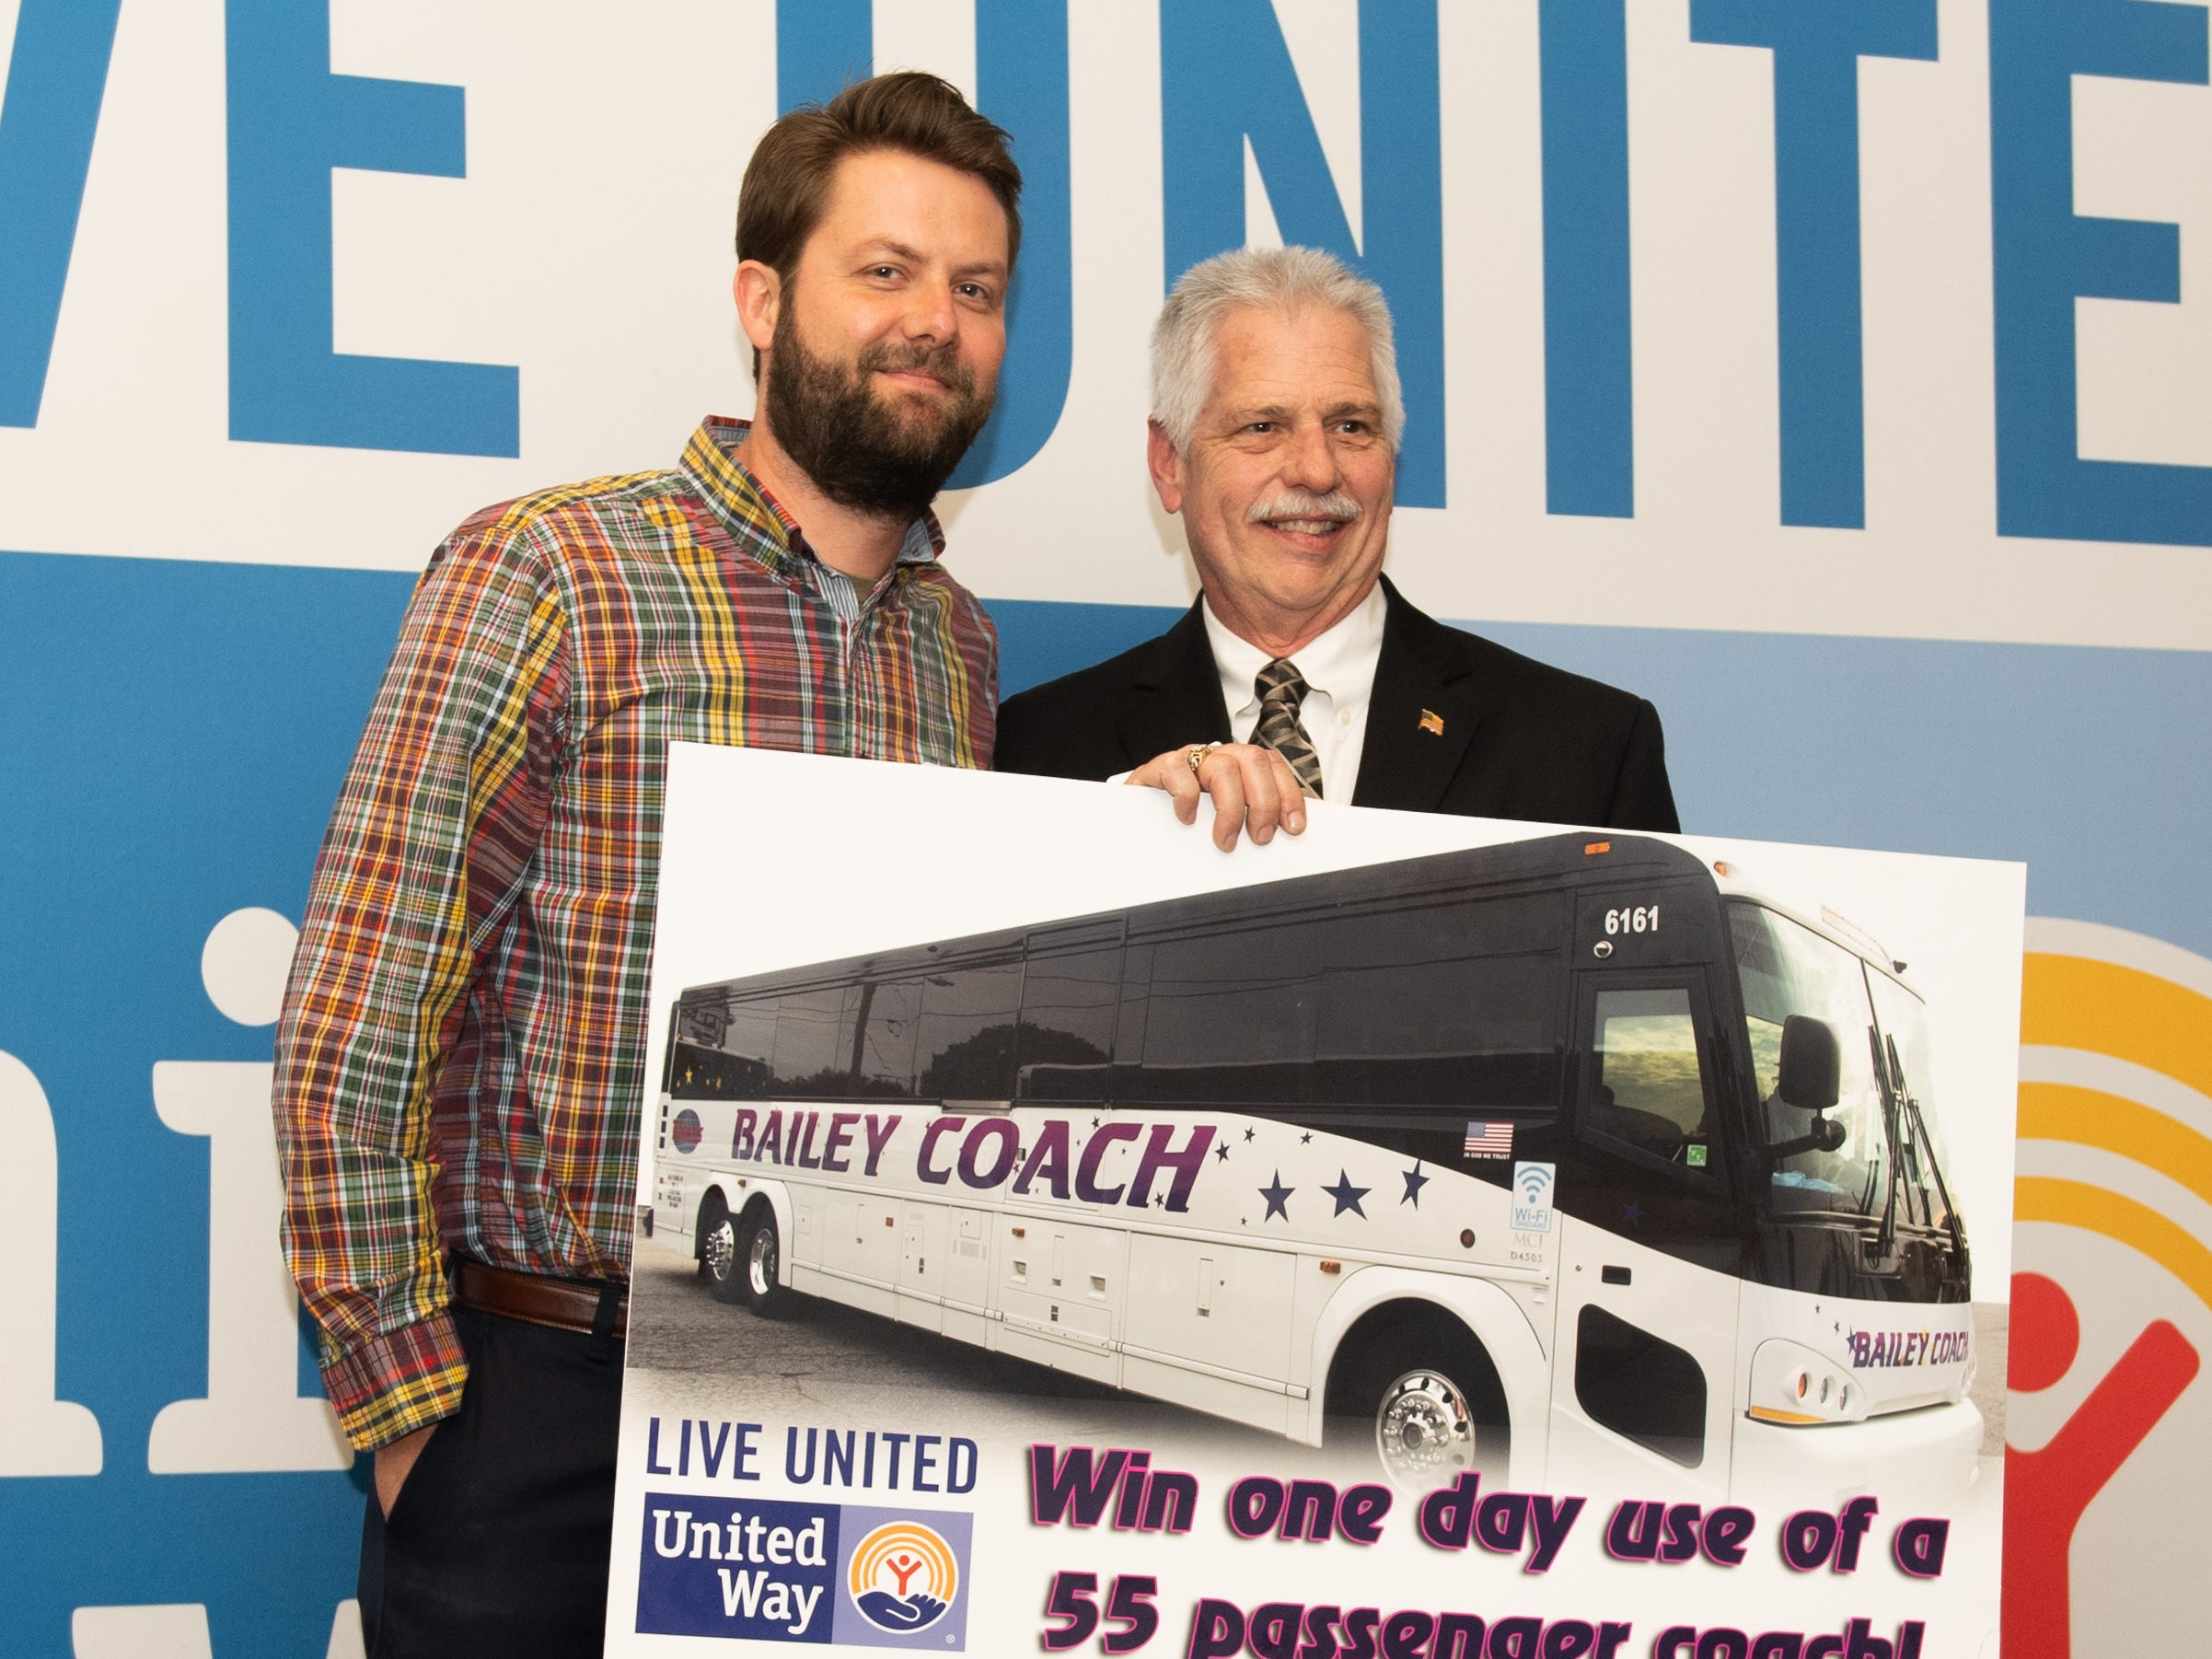 Kevin Krasowski of Graham Architectural (left) won a One-Day All-Inclusive Atlantic City Trip during the 2018 United Way Campaign Celebration, February 7, 2019.